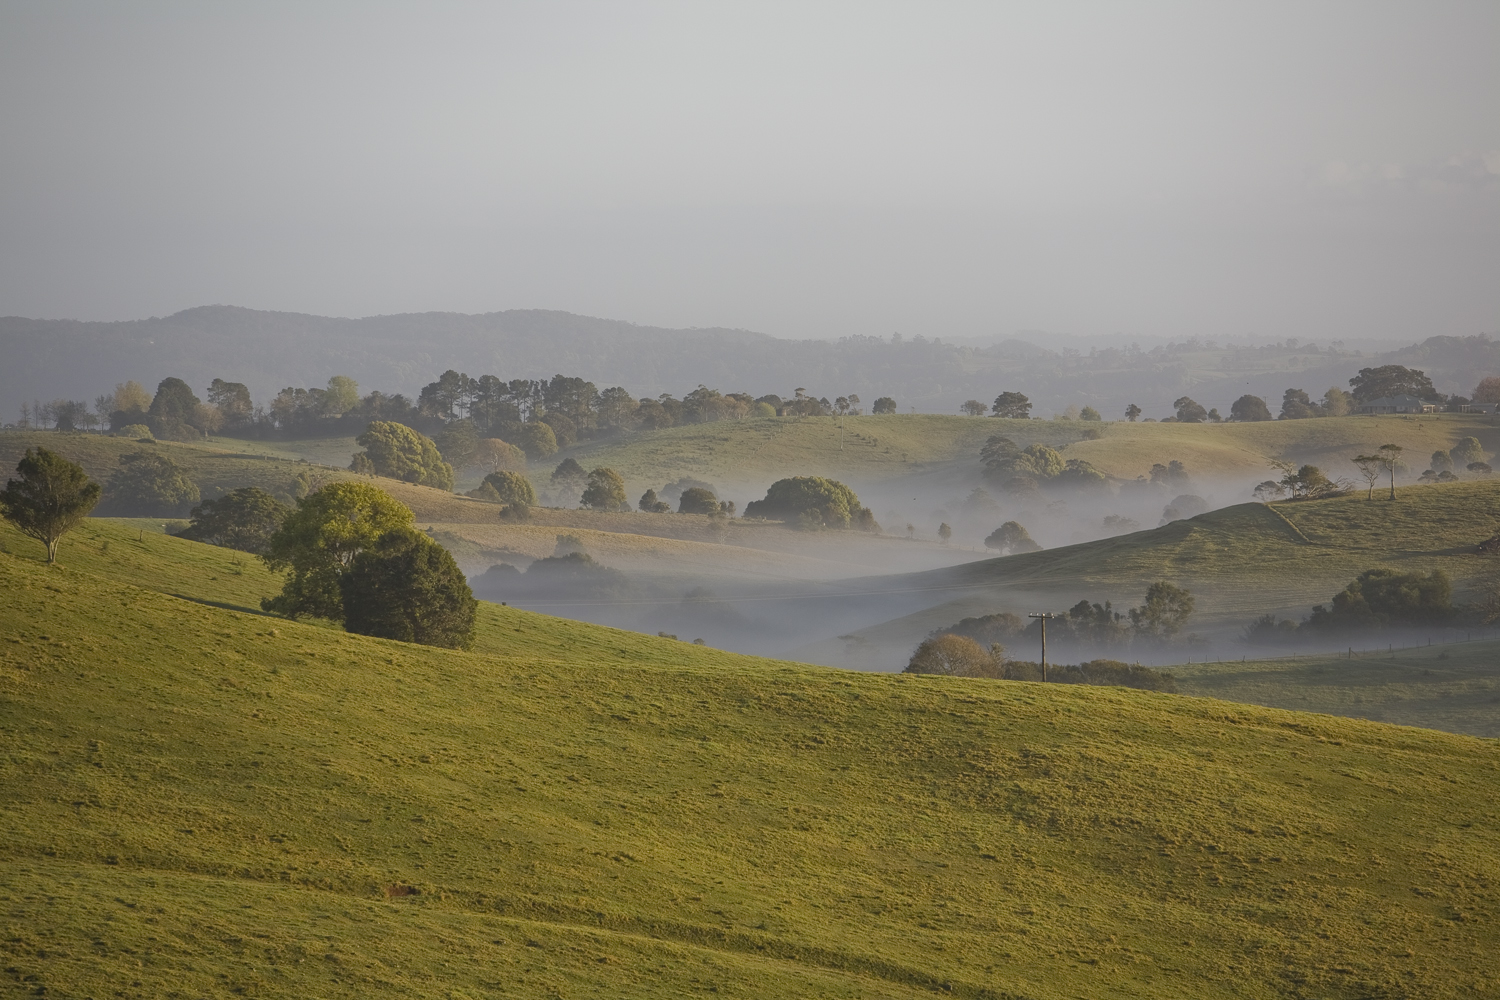 Misty morning in the Maleny countryside